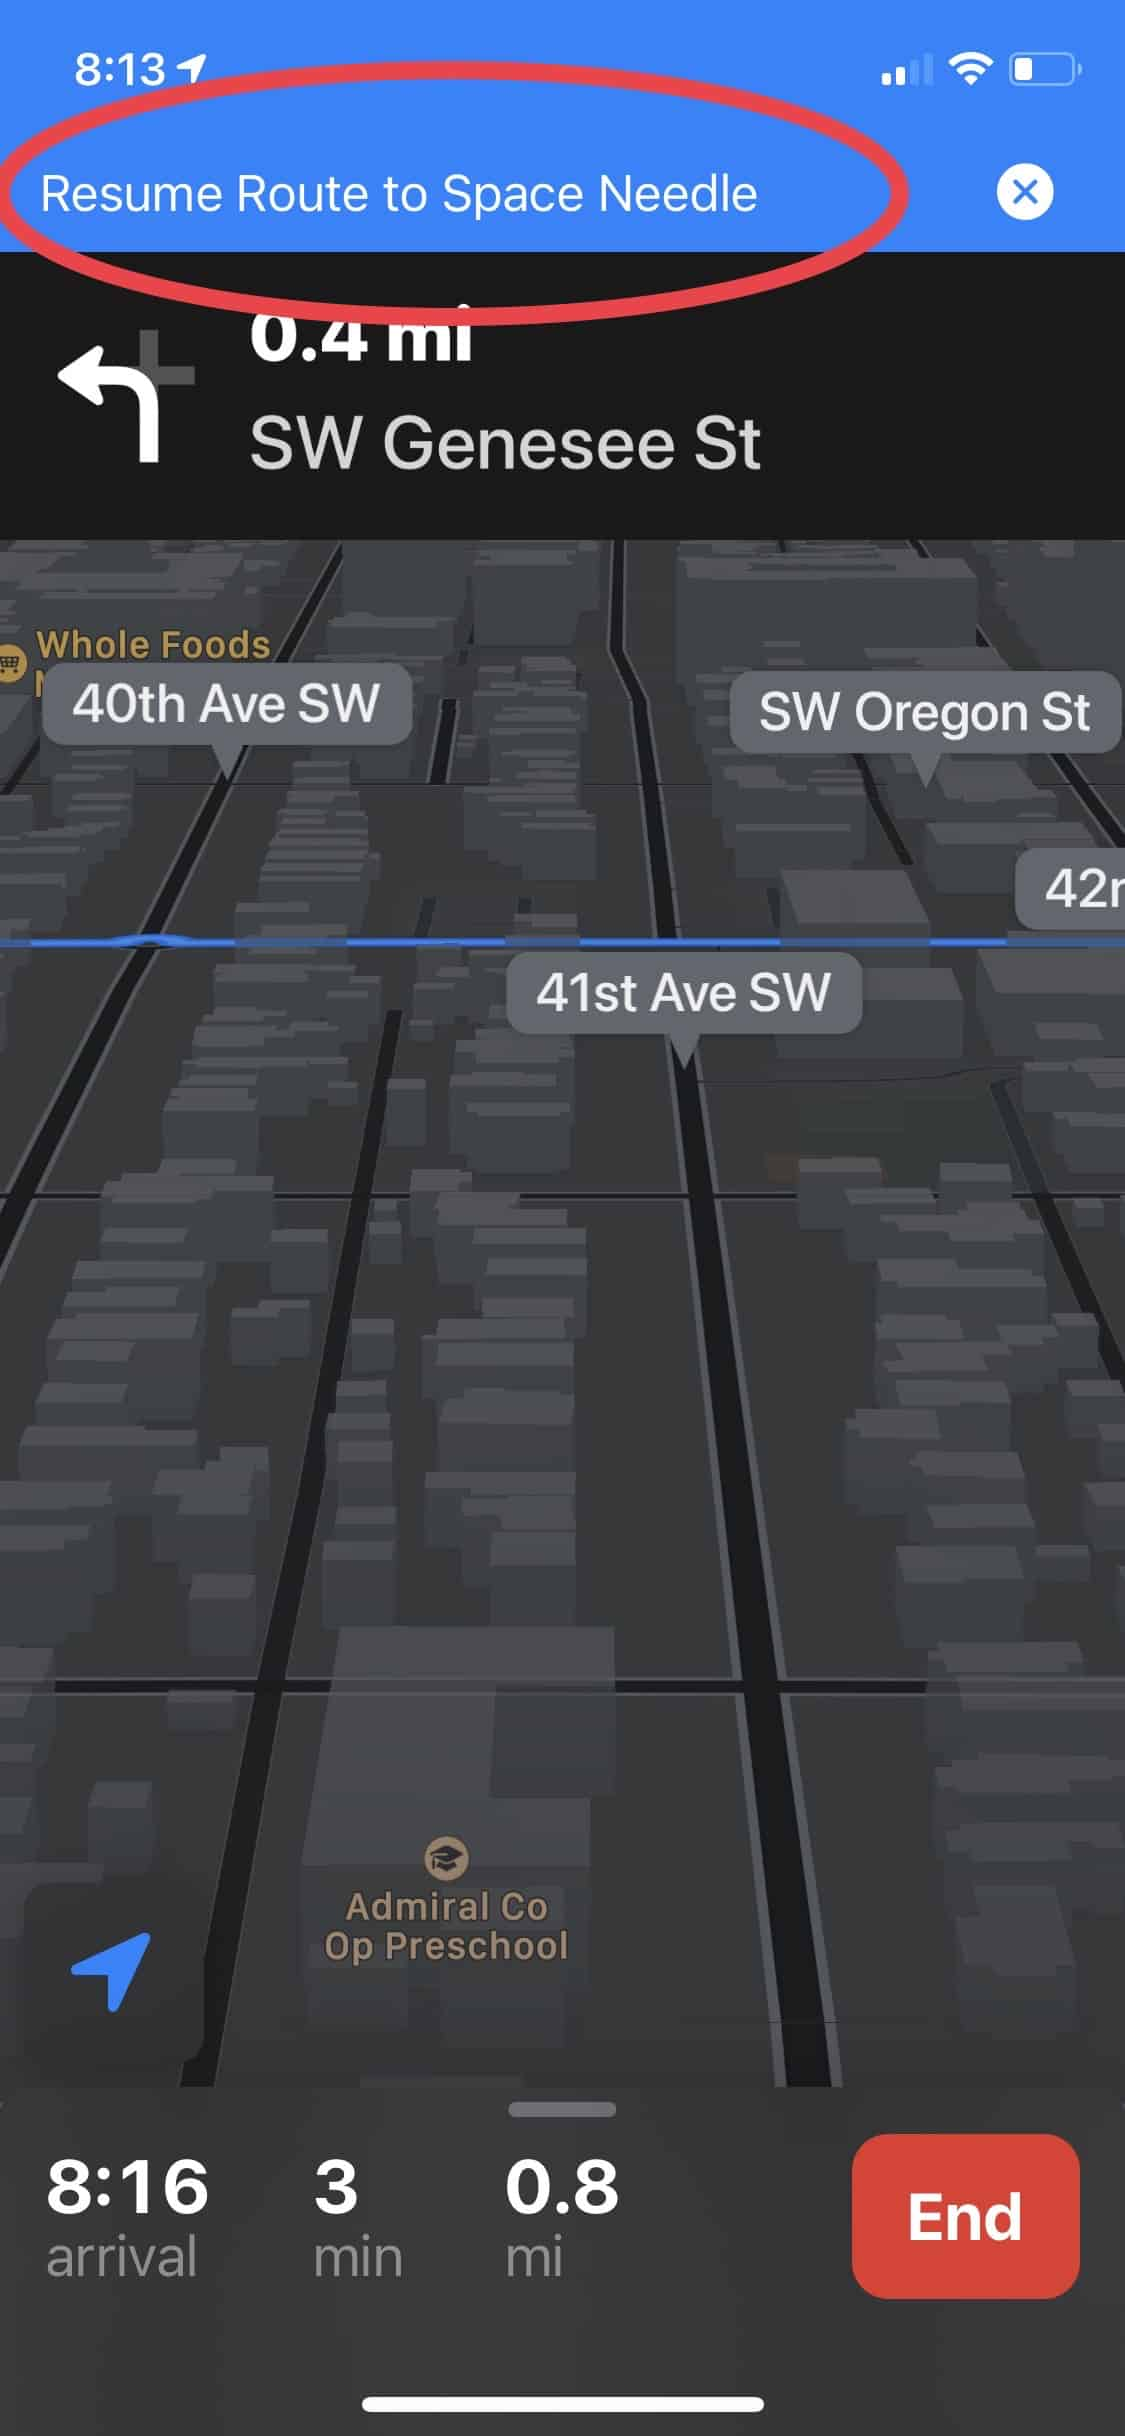 Resume your route - Apple Maps